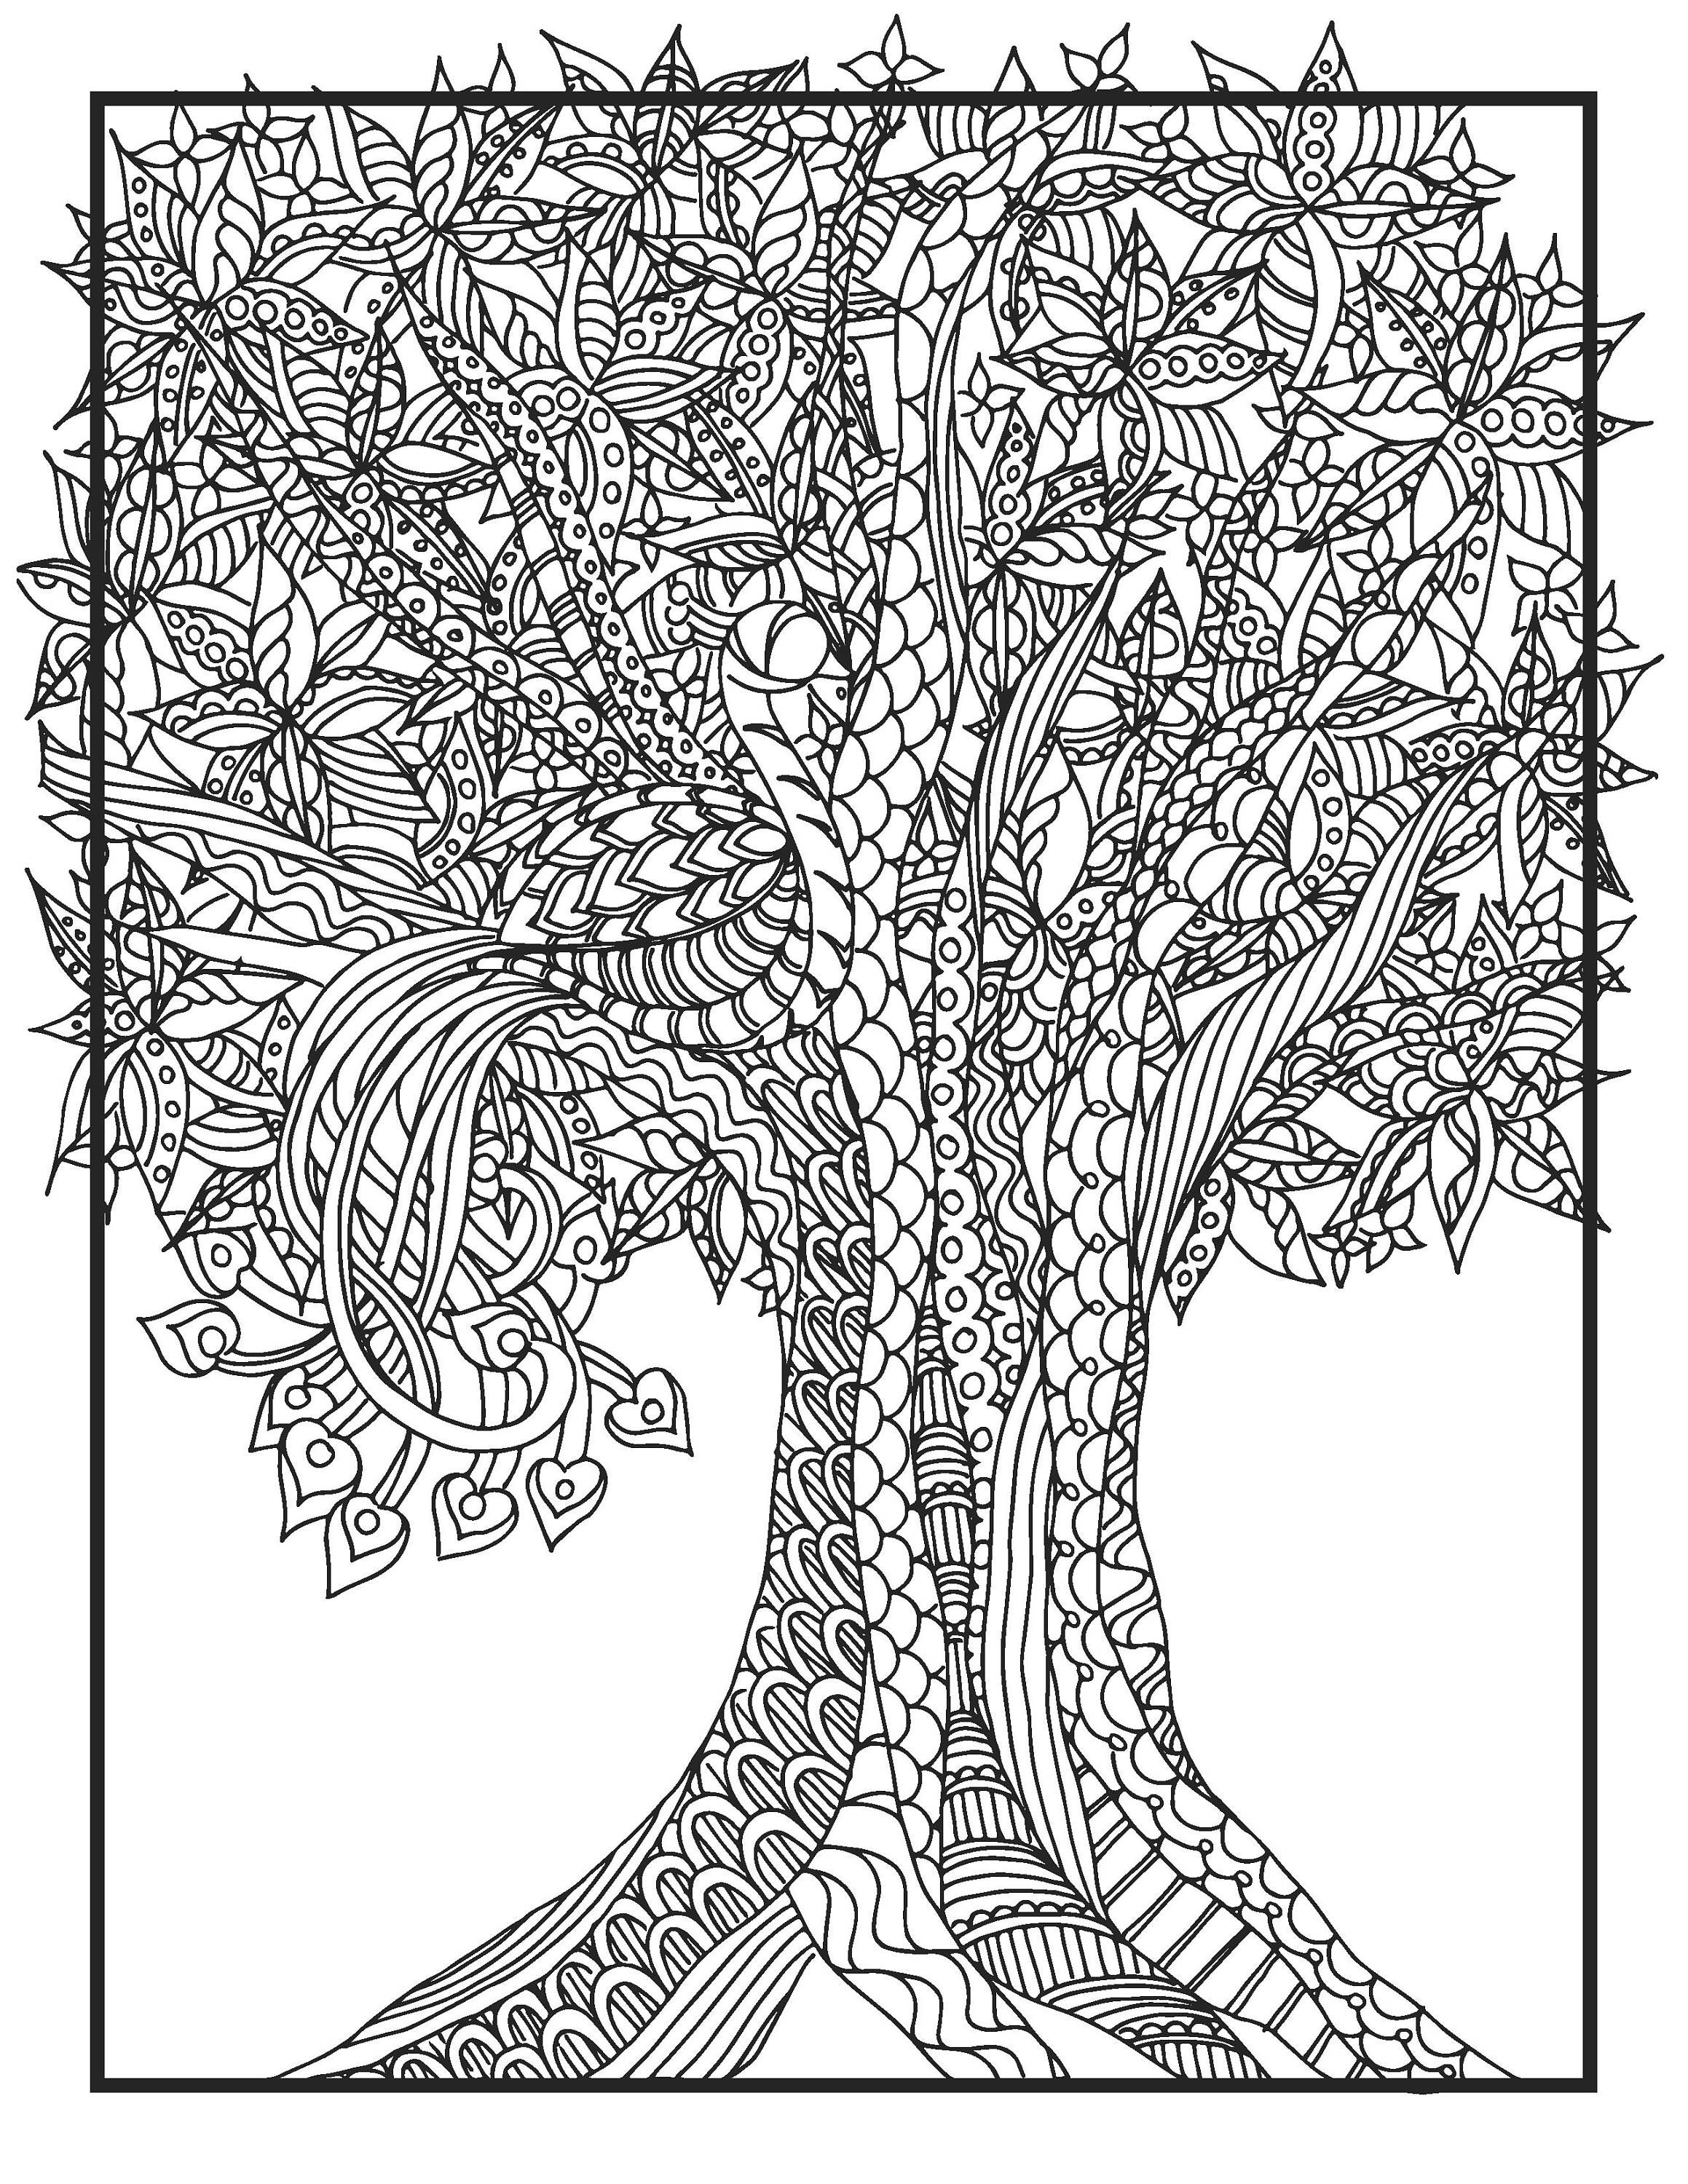 tree mandala coloring pages coloring pages for kids christmas tree mandala arts tree mandala pages coloring